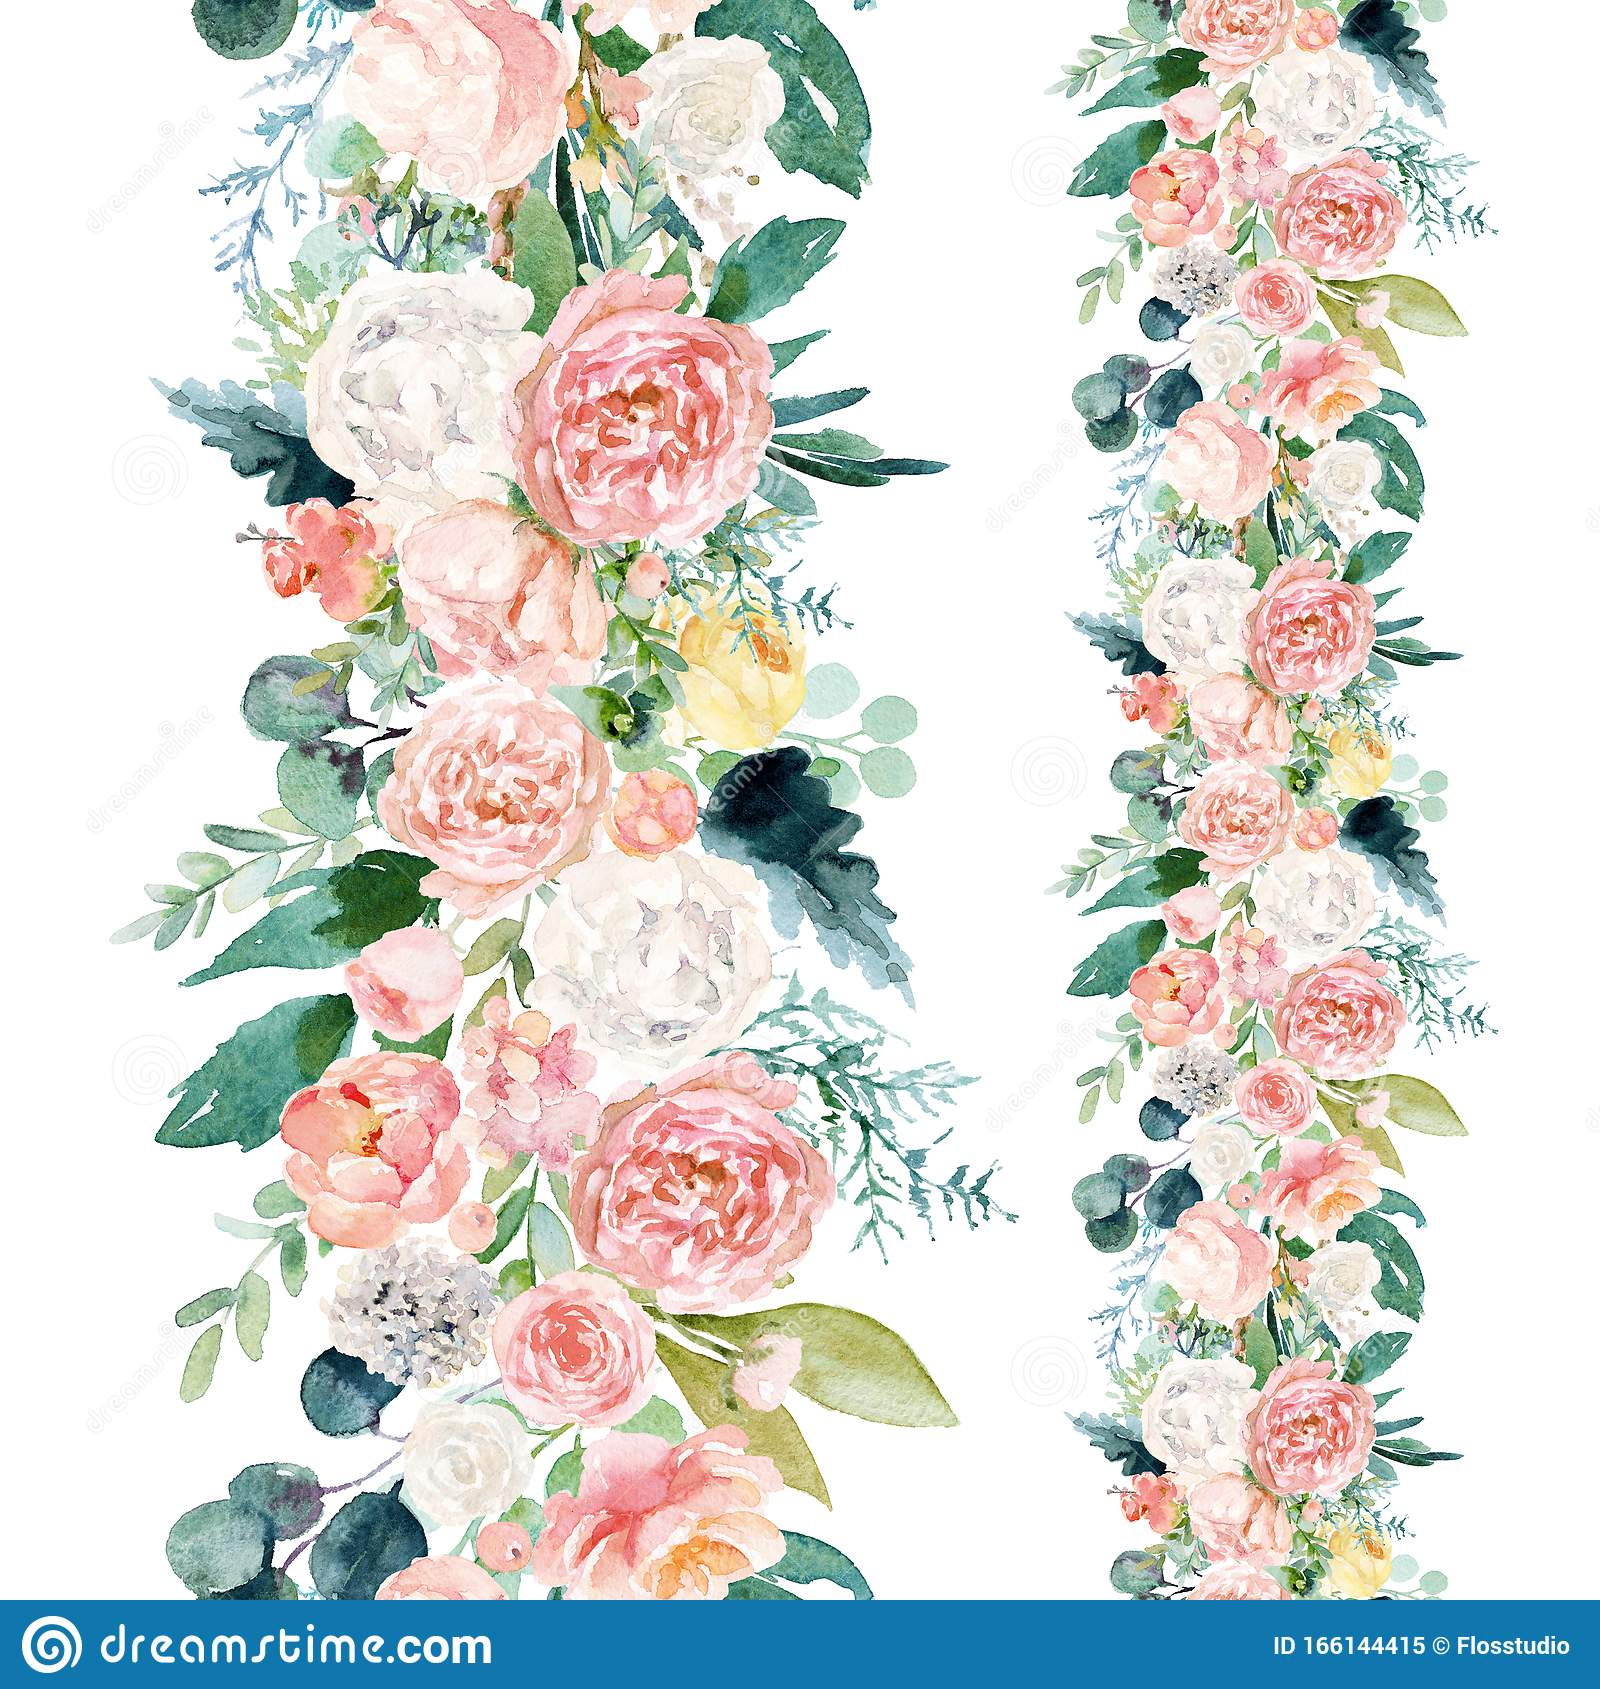 Seamless Watercolor Floral Pattern With Flower Border Composition